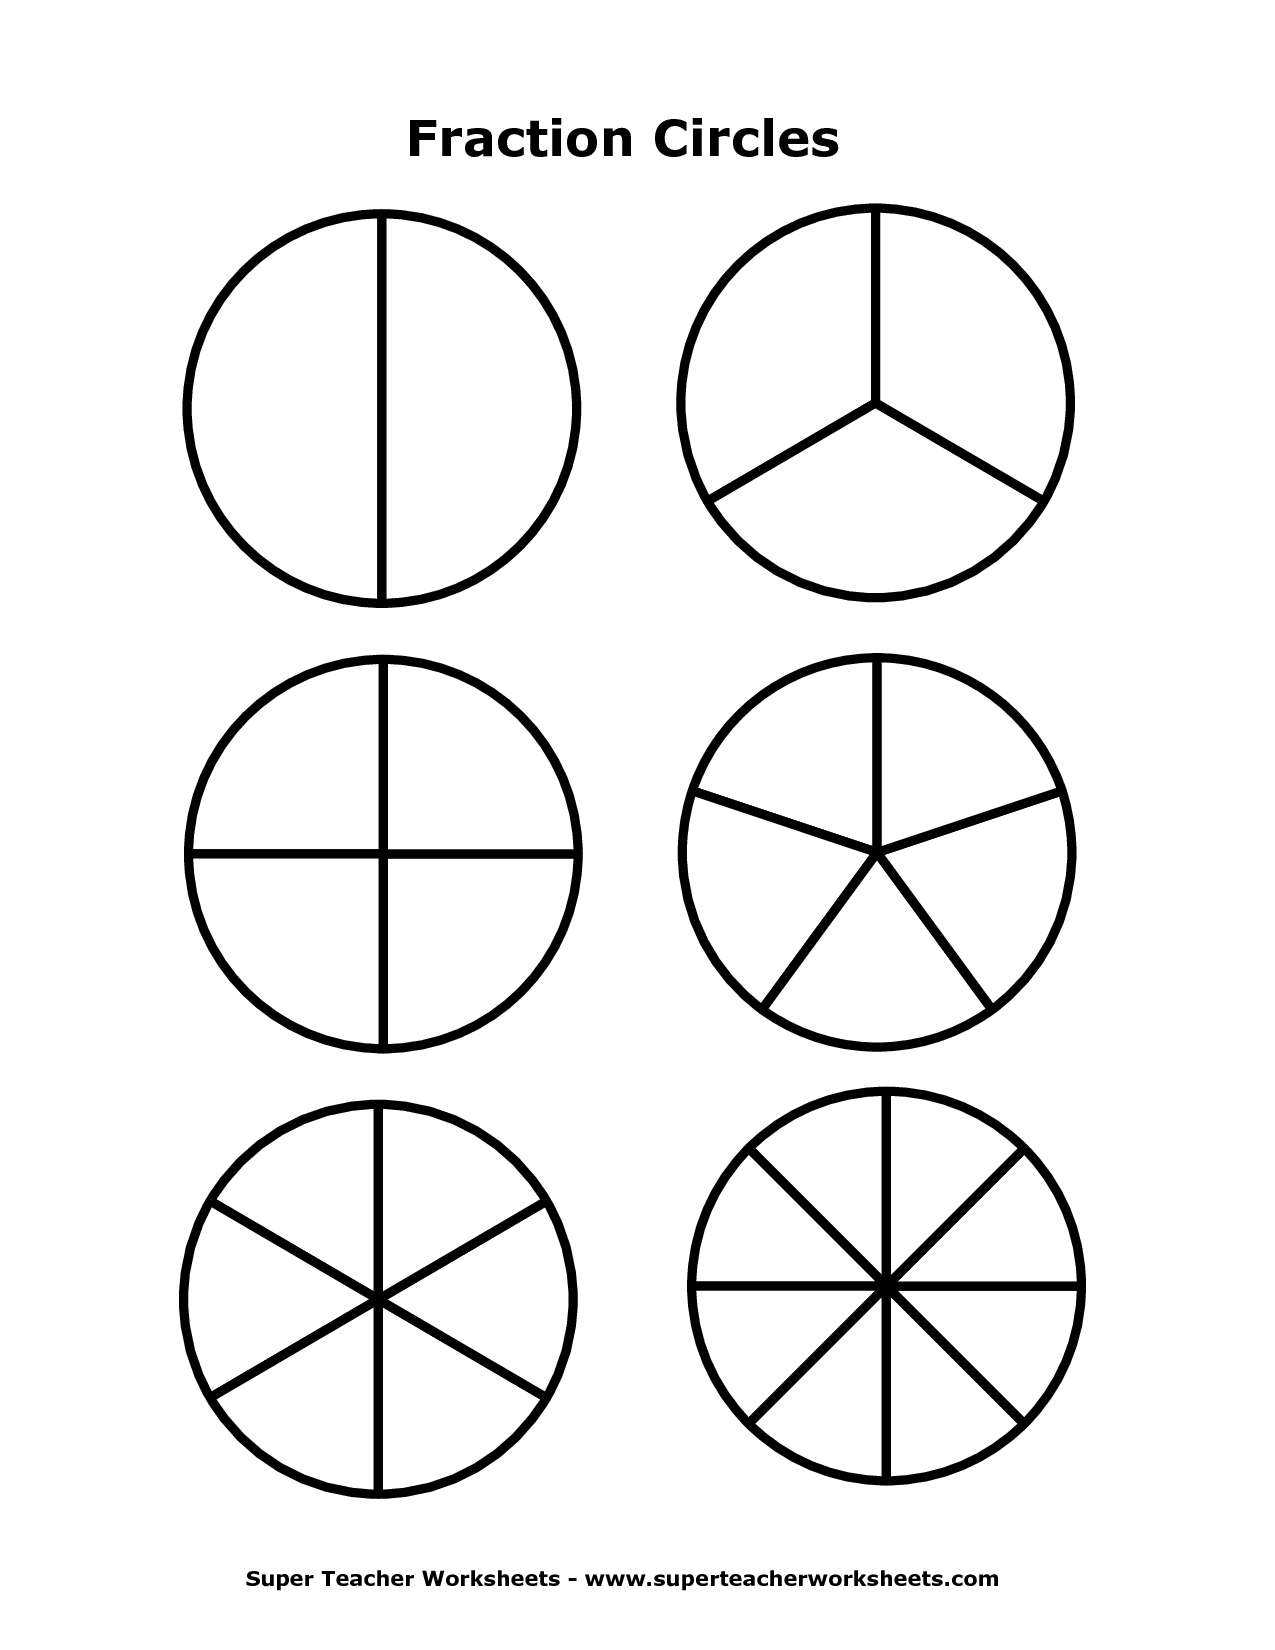 Images Of Fraction Circles - Google Search | Teaching Ideas - Free Printable Blank Fraction Circles